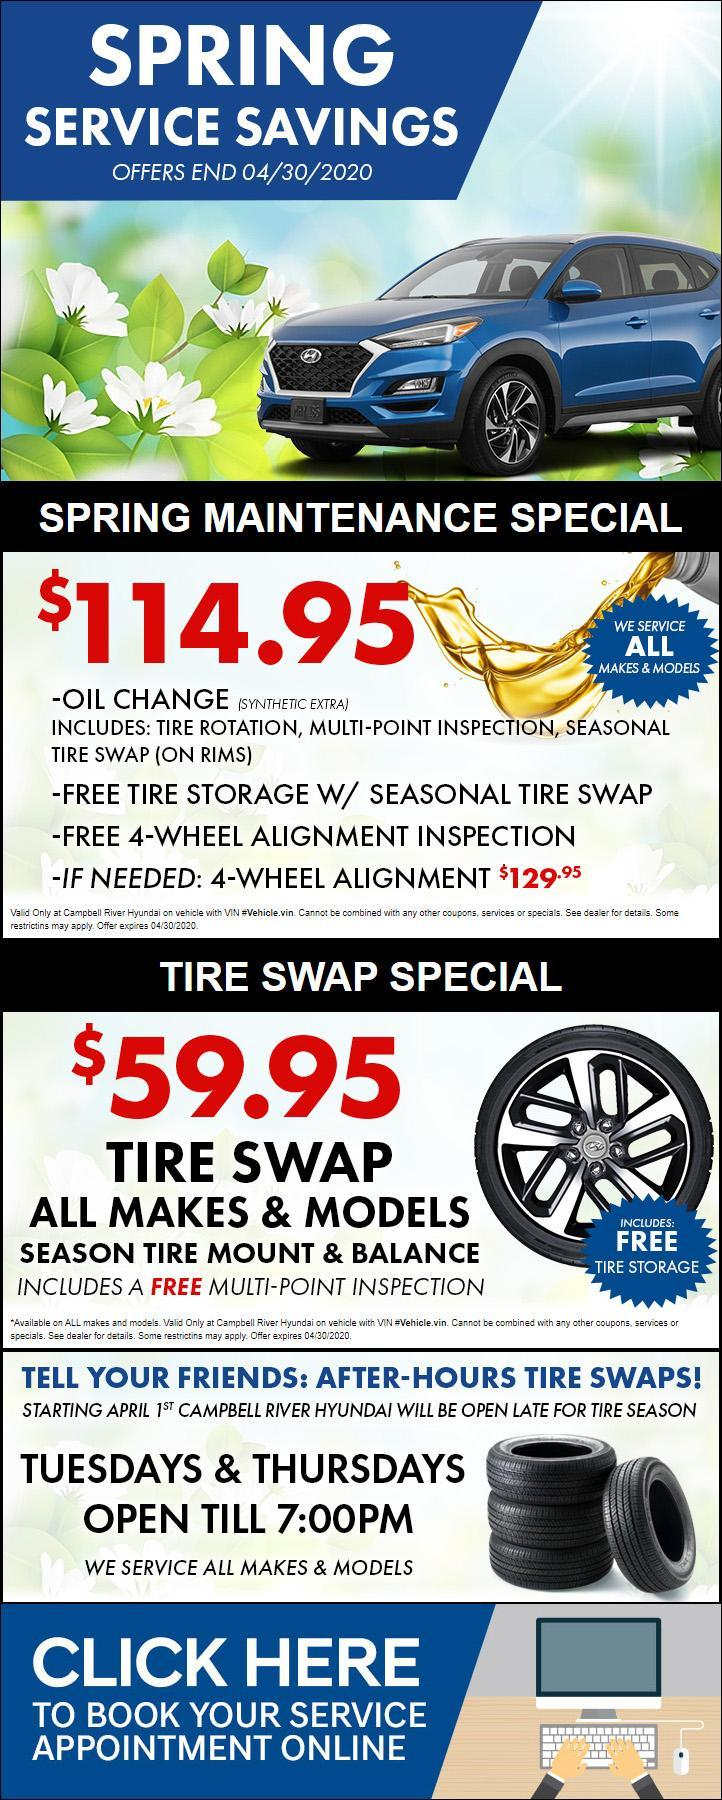 Current Service Special - Campbell River Hyundai